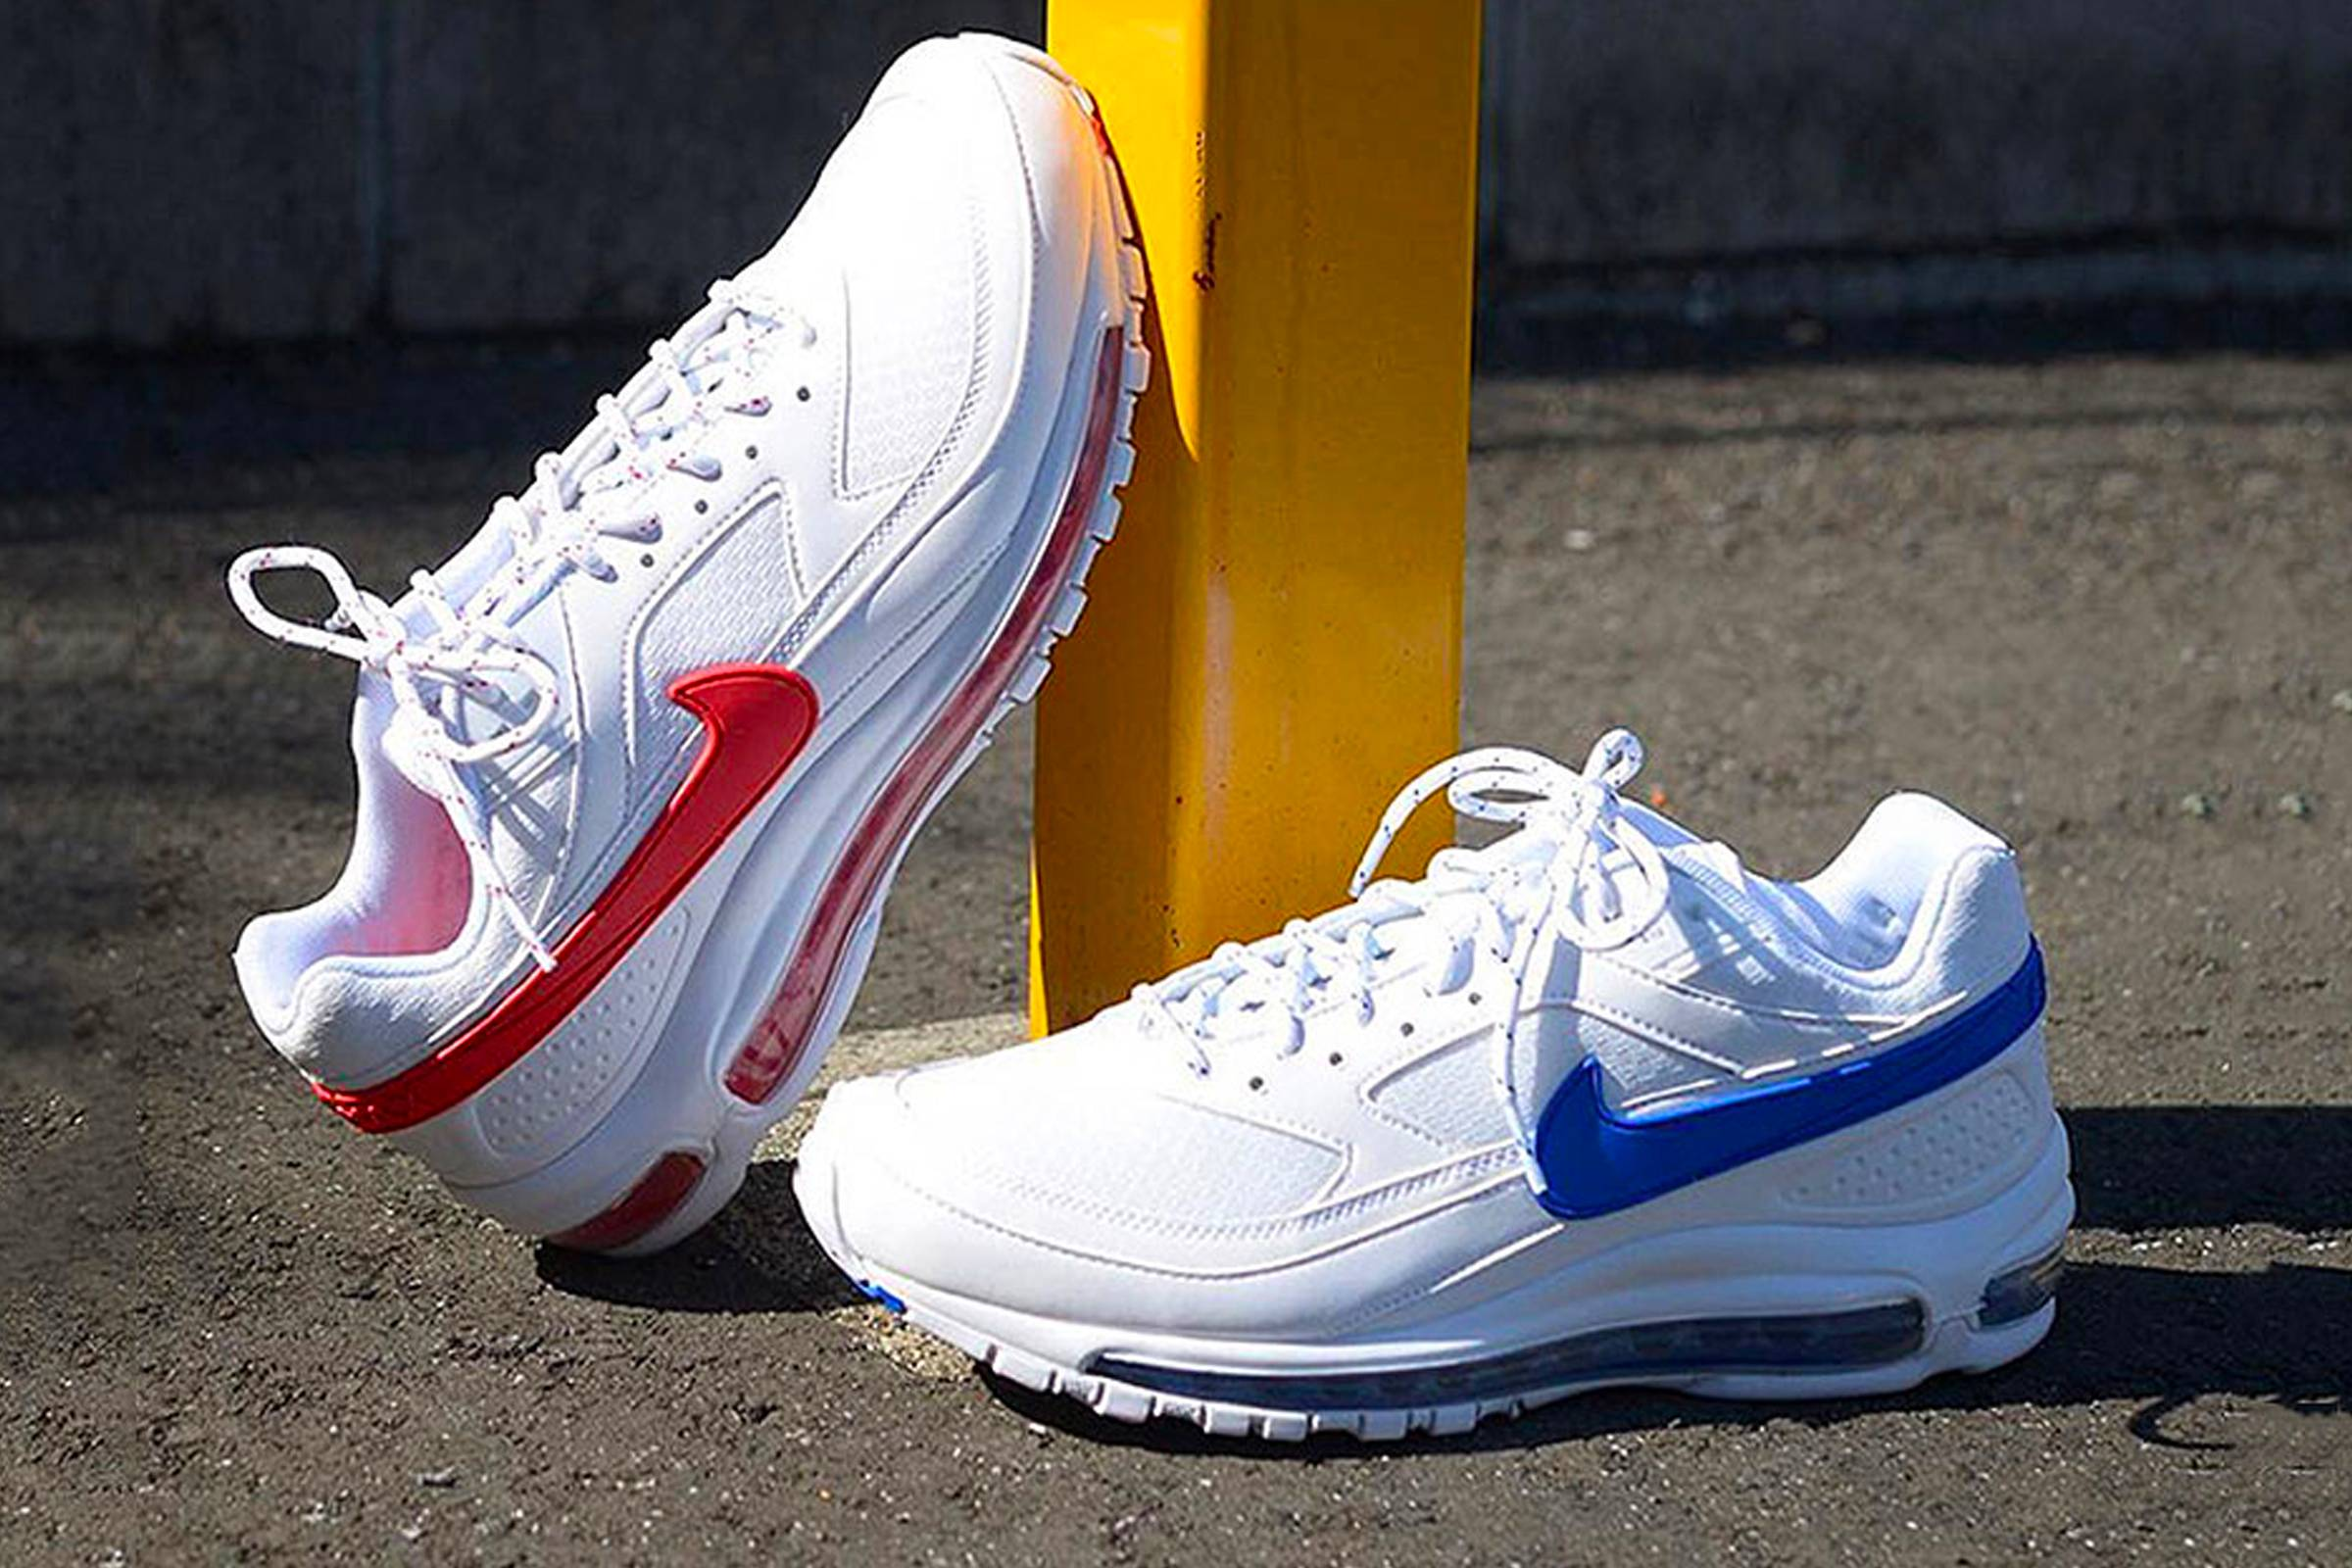 6c8ff9e0c4 Skepta's Latest Nike Collaboration Has a Release Date - Air Max 97 ...